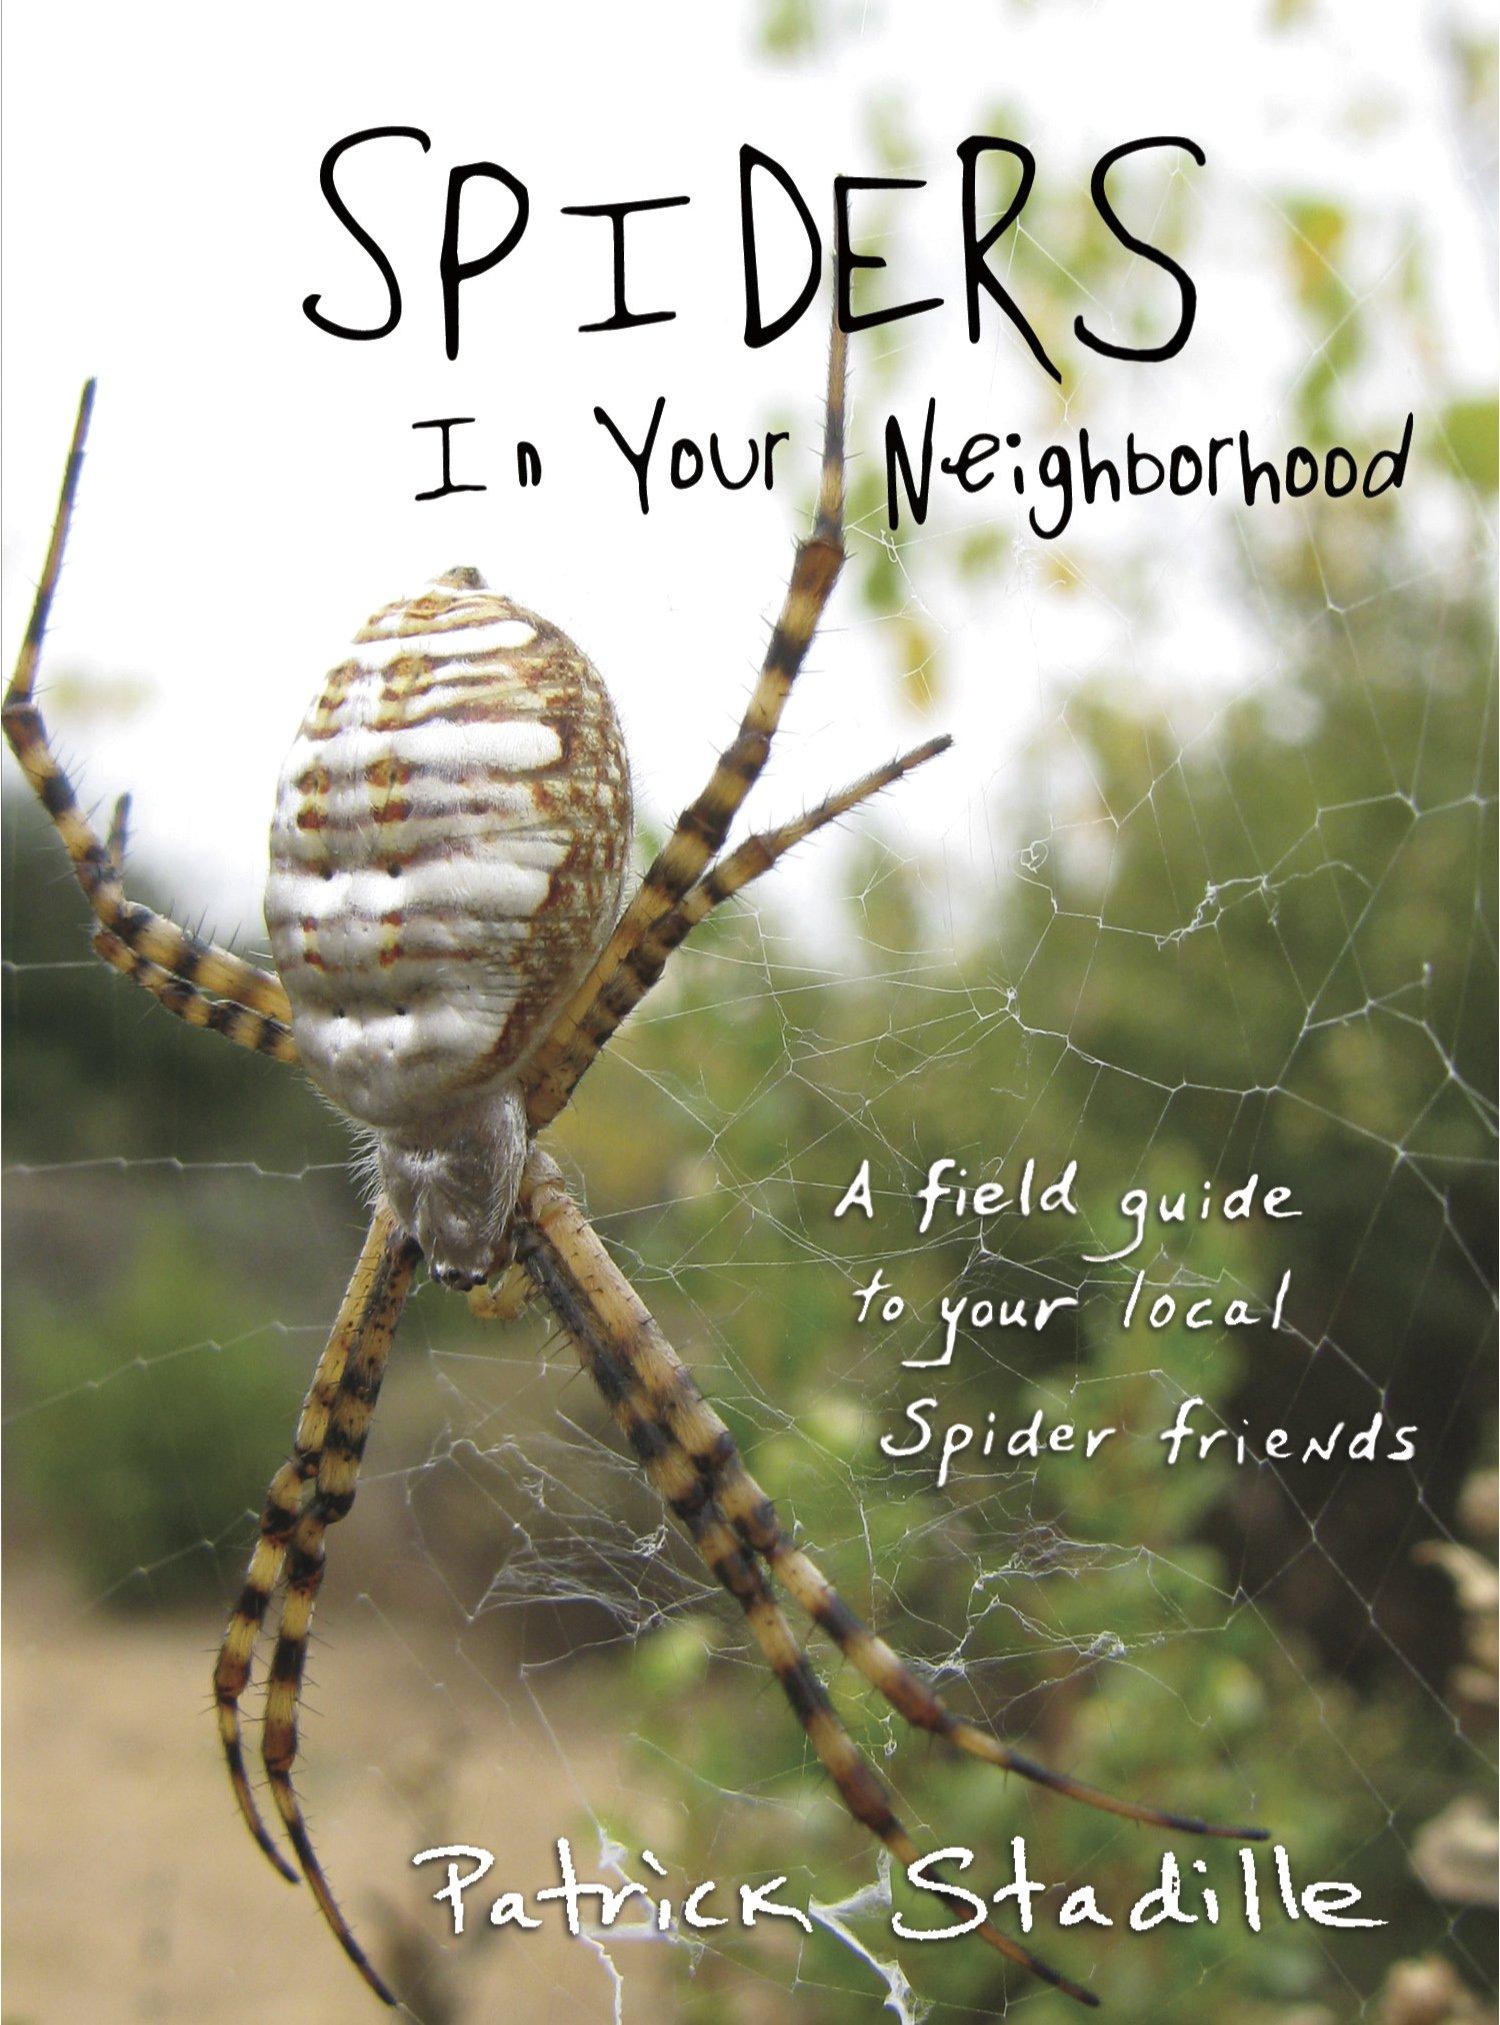 spiders-in-your-neighborhood-a-field-guide-to-your-local-spider-friends